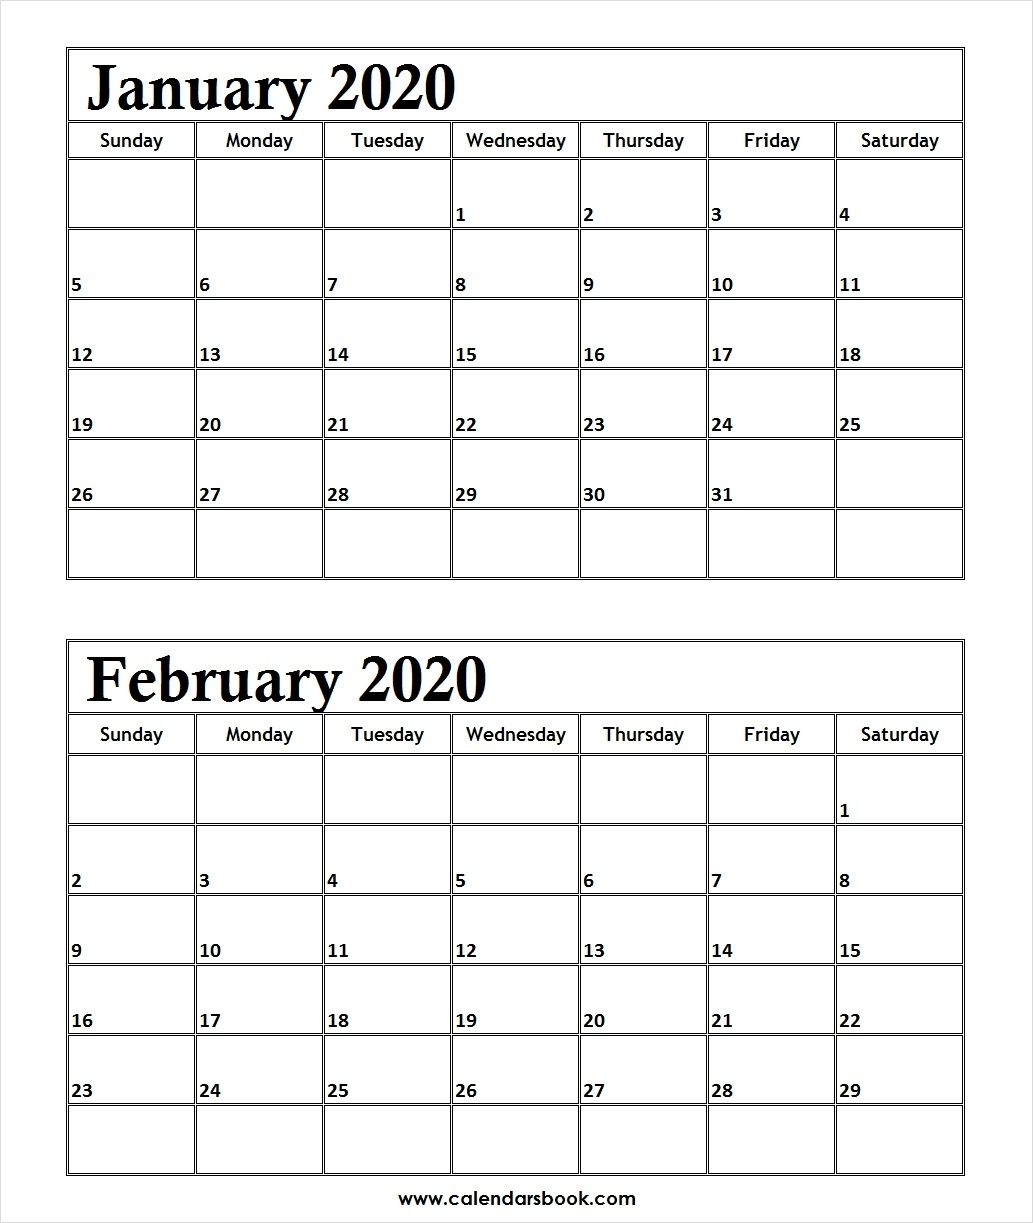 Print January February 2020 Calendar Template | 2 Month Calendar-2020 Calendar January And February